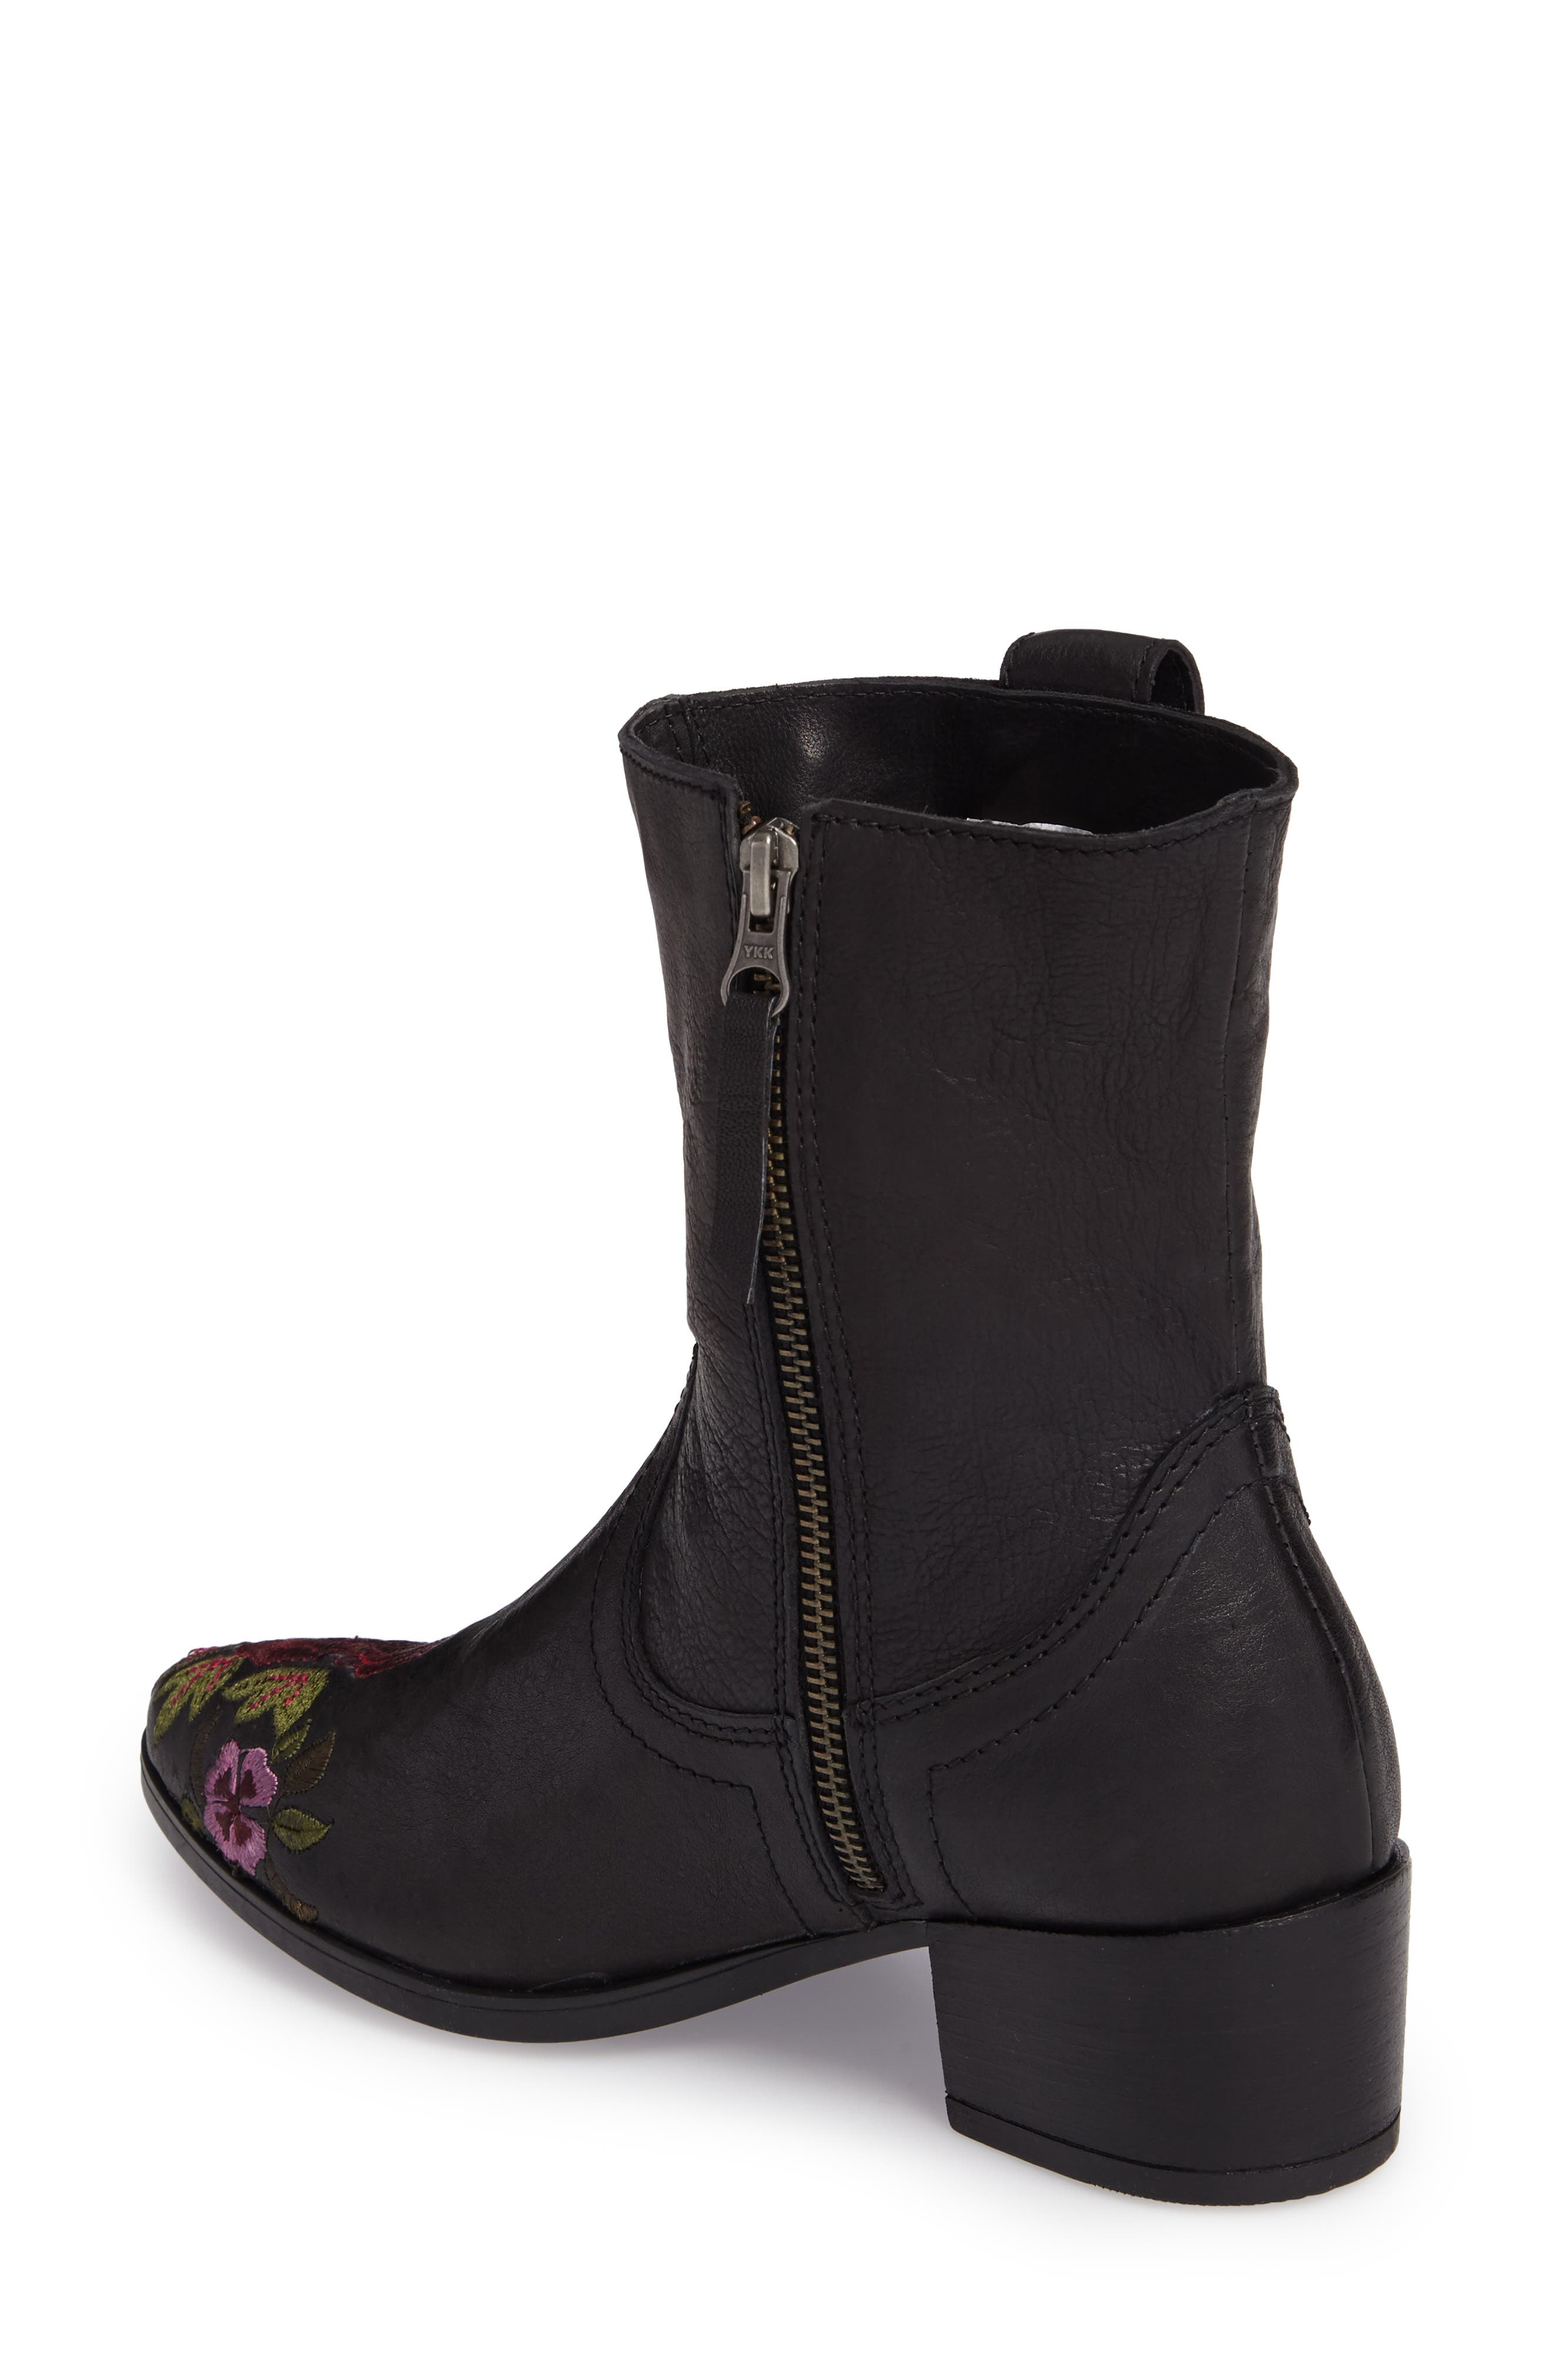 Shallot Floral Embroidered Bootie,                             Alternate thumbnail 2, color,                             Black Leather